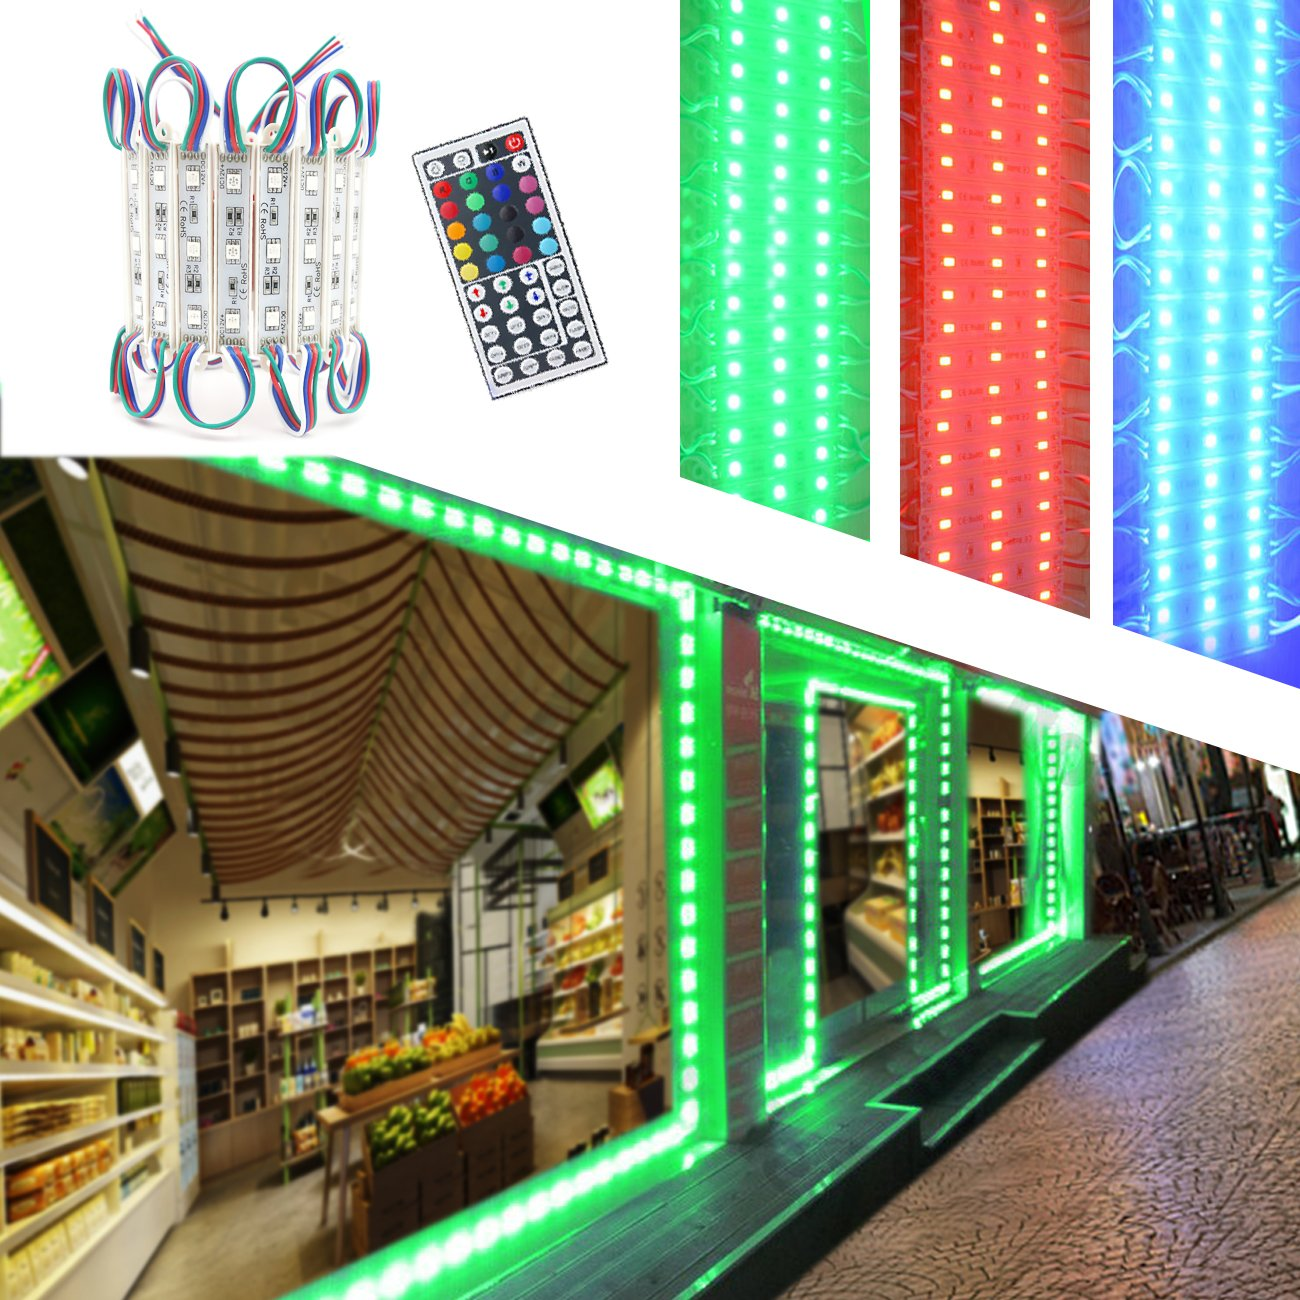 Storefront Lights, Pomelotree 2 Pack 3 Led 40PCS 5050 Super Bright LED Module Lights Waterproof Decorative Light with Tape Adhesive for Store Window Lighting and Advertising Signs by Pomelotree (Image #2)